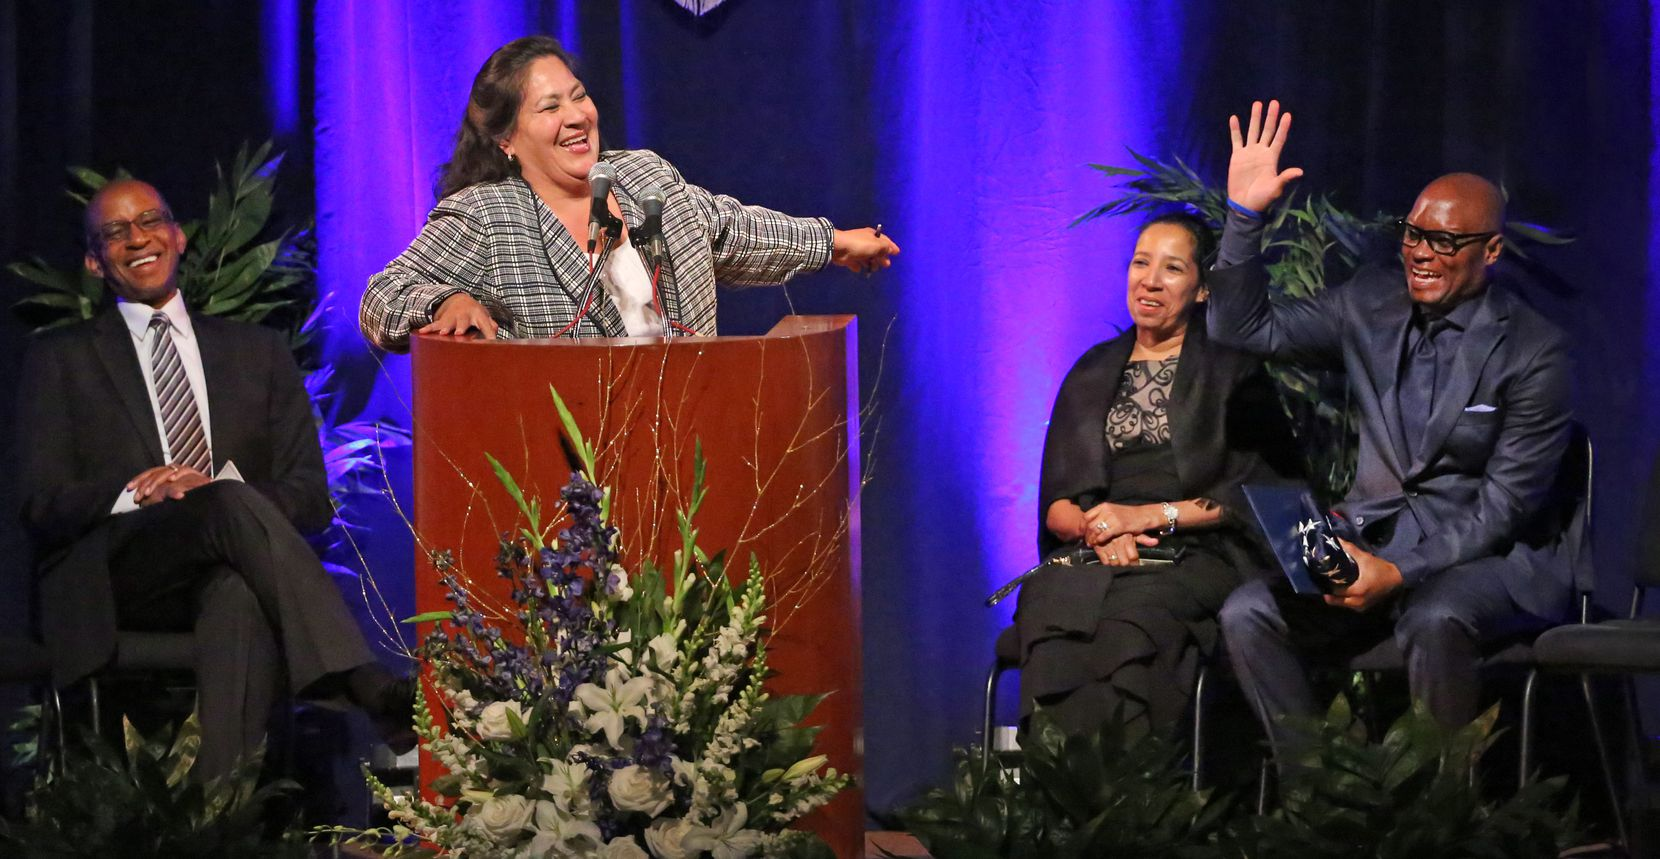 Dallas Mayor Pro tem Monica Alonzo jokes with former Dallas Police Chief David O. Brown during his retirement ceremony, as master of ceremonies Willis Johnson, left, and Brown's wife Cedonia, second from right, enjoy the festivities.